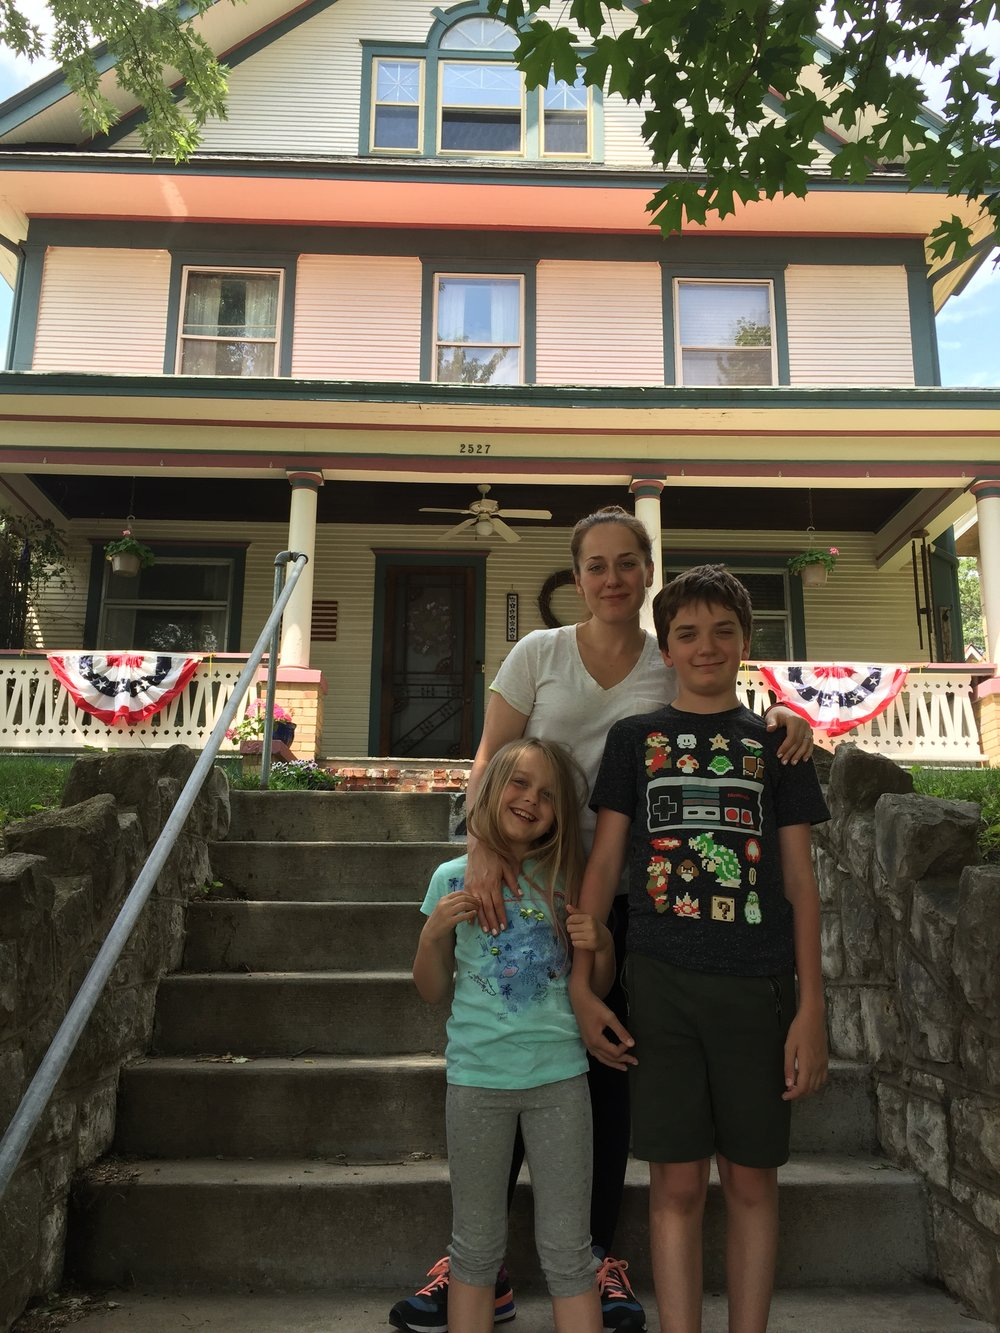 The home I grew up in: 2527 Felix. It looks the same except we did not have the flags, wreath or hand rail on steps.